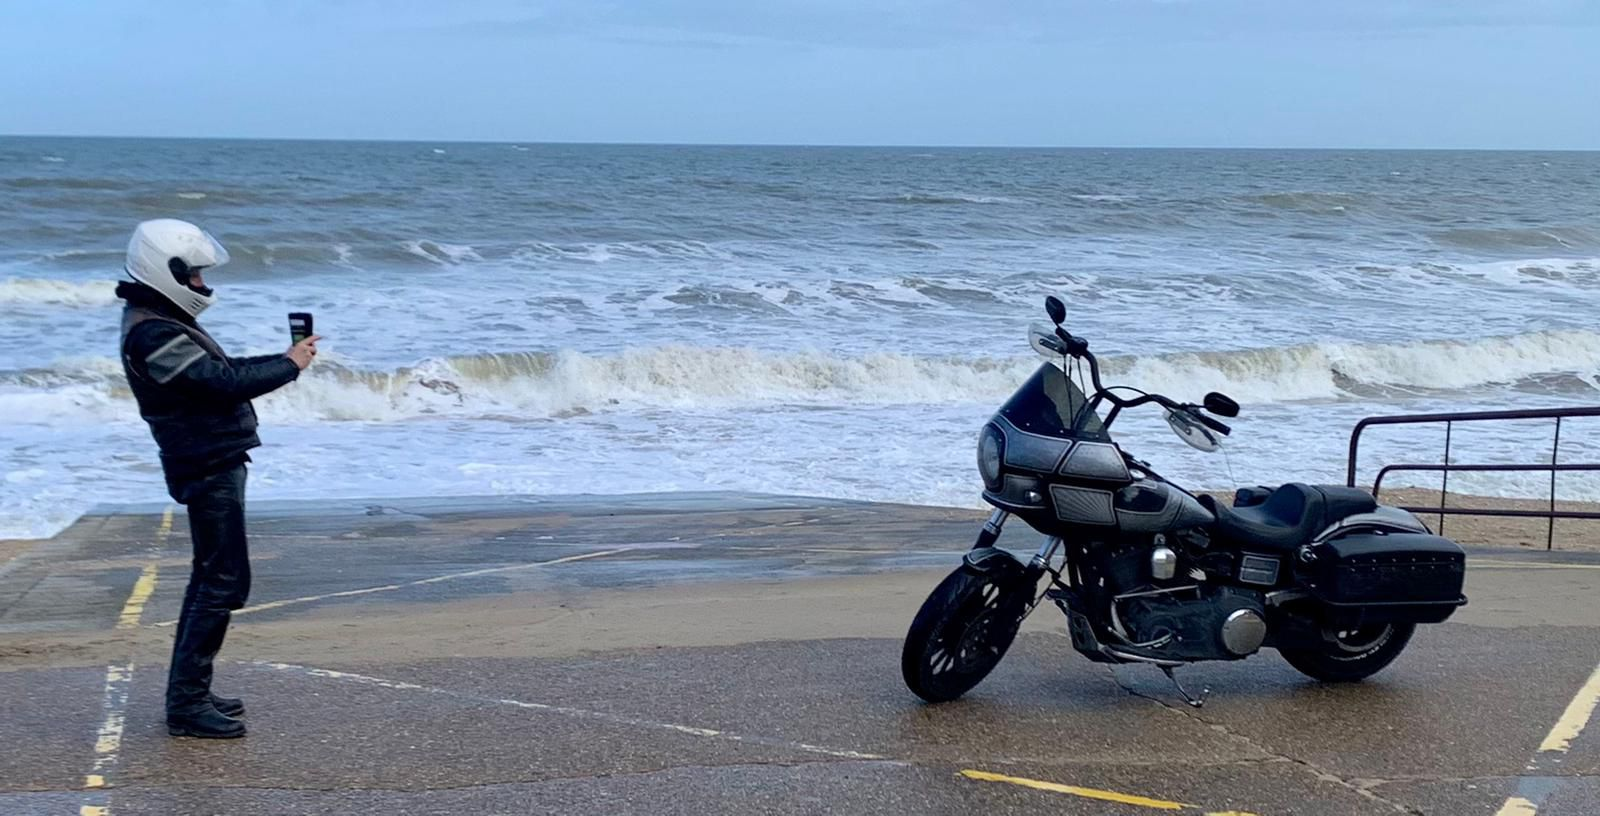 Ride to Cabourg by Hervè